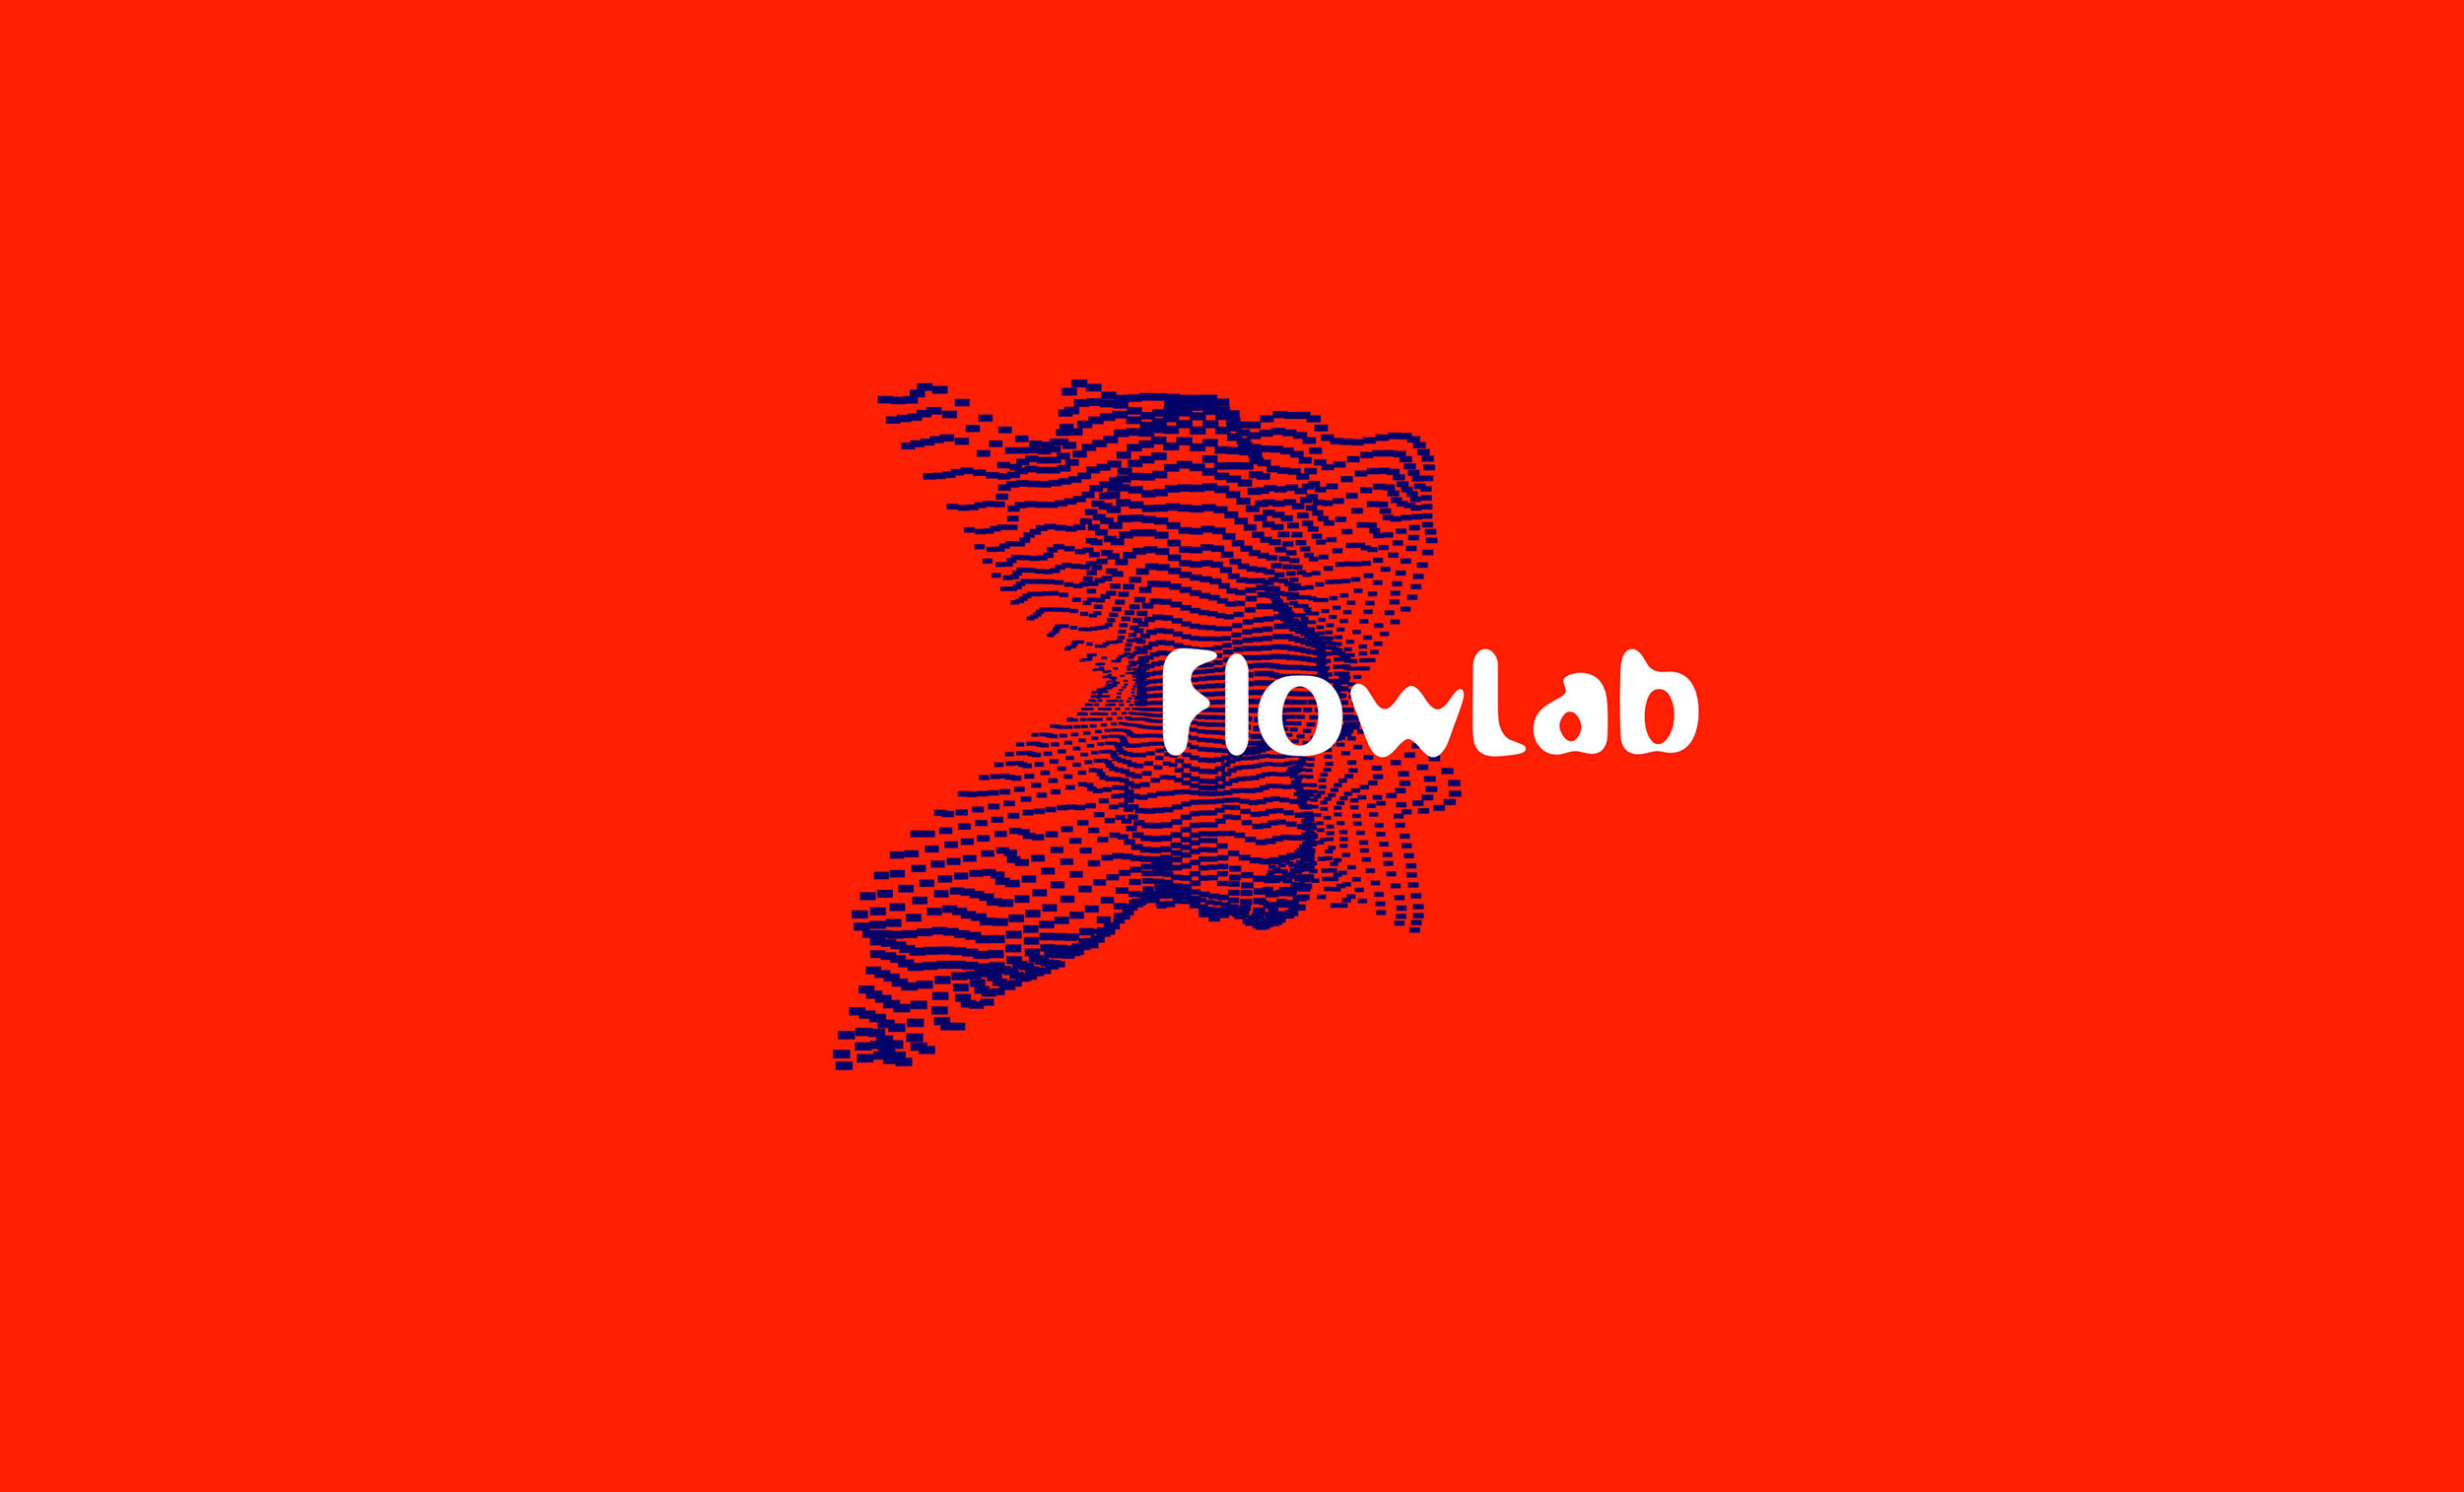 COVER-FLOW-LAB